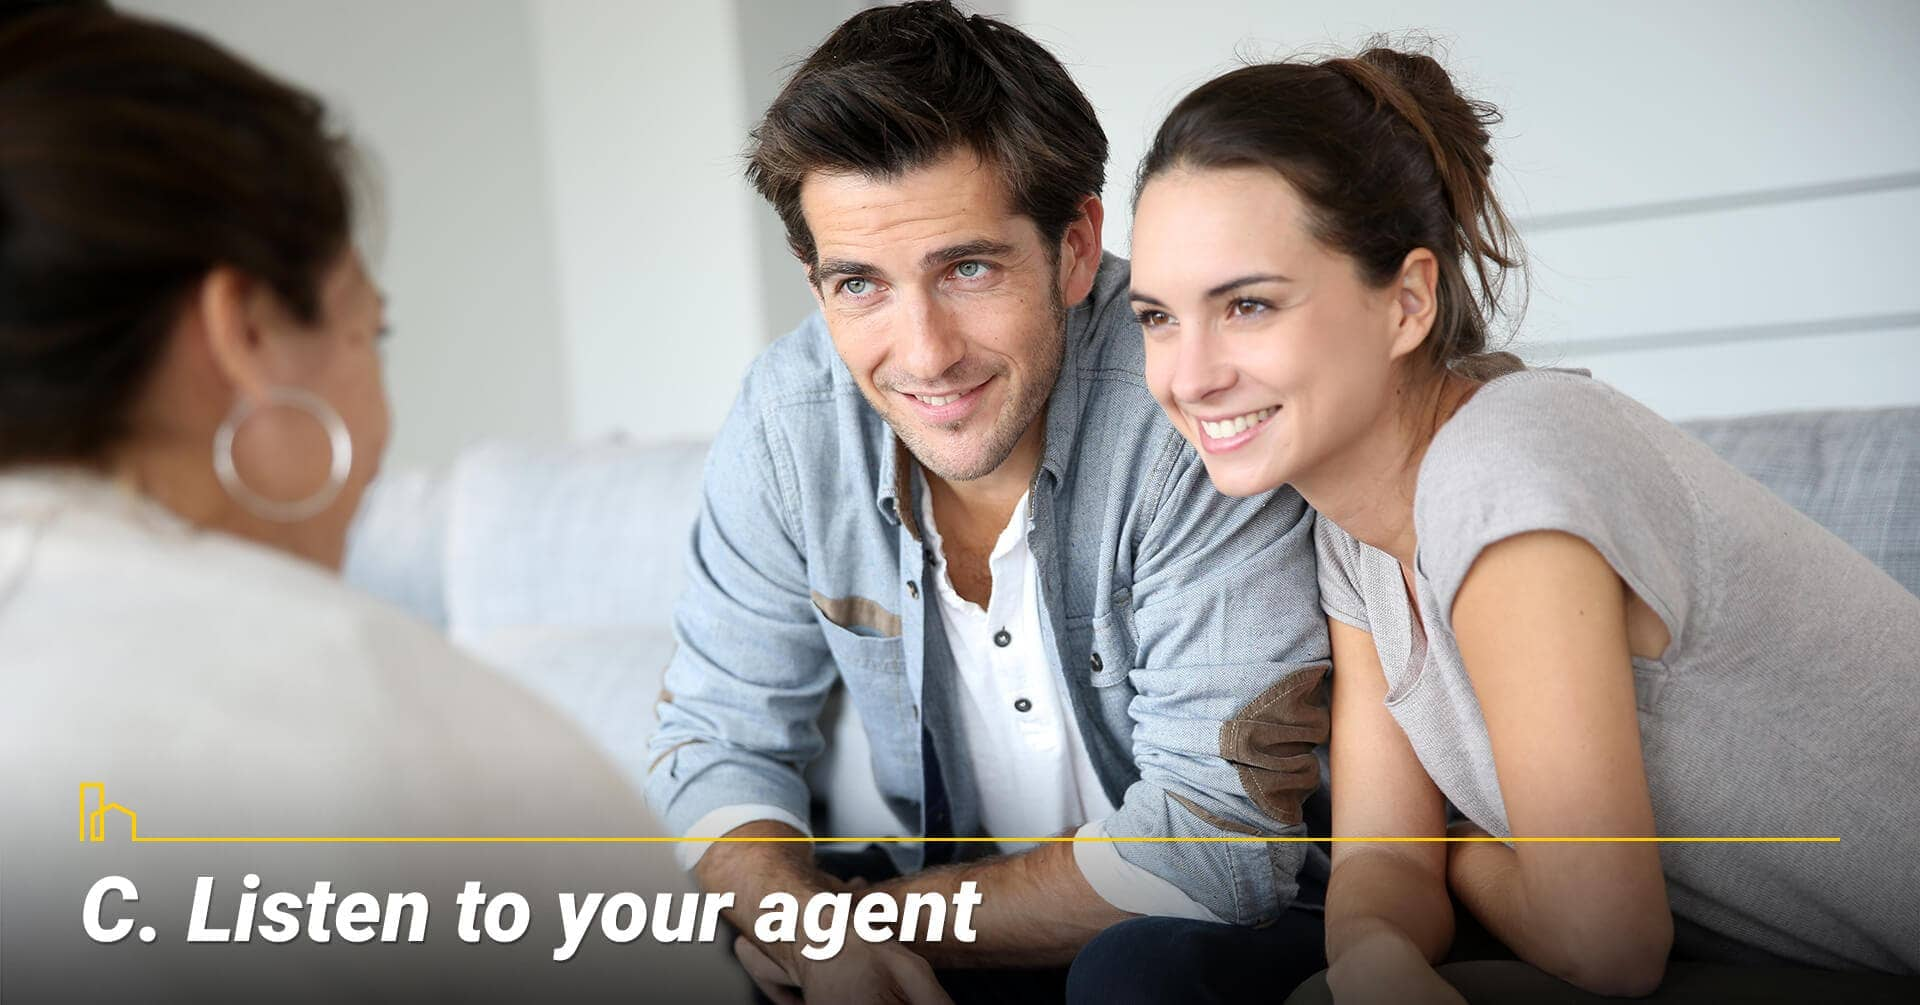 Listen to your agent, take advice from your agent